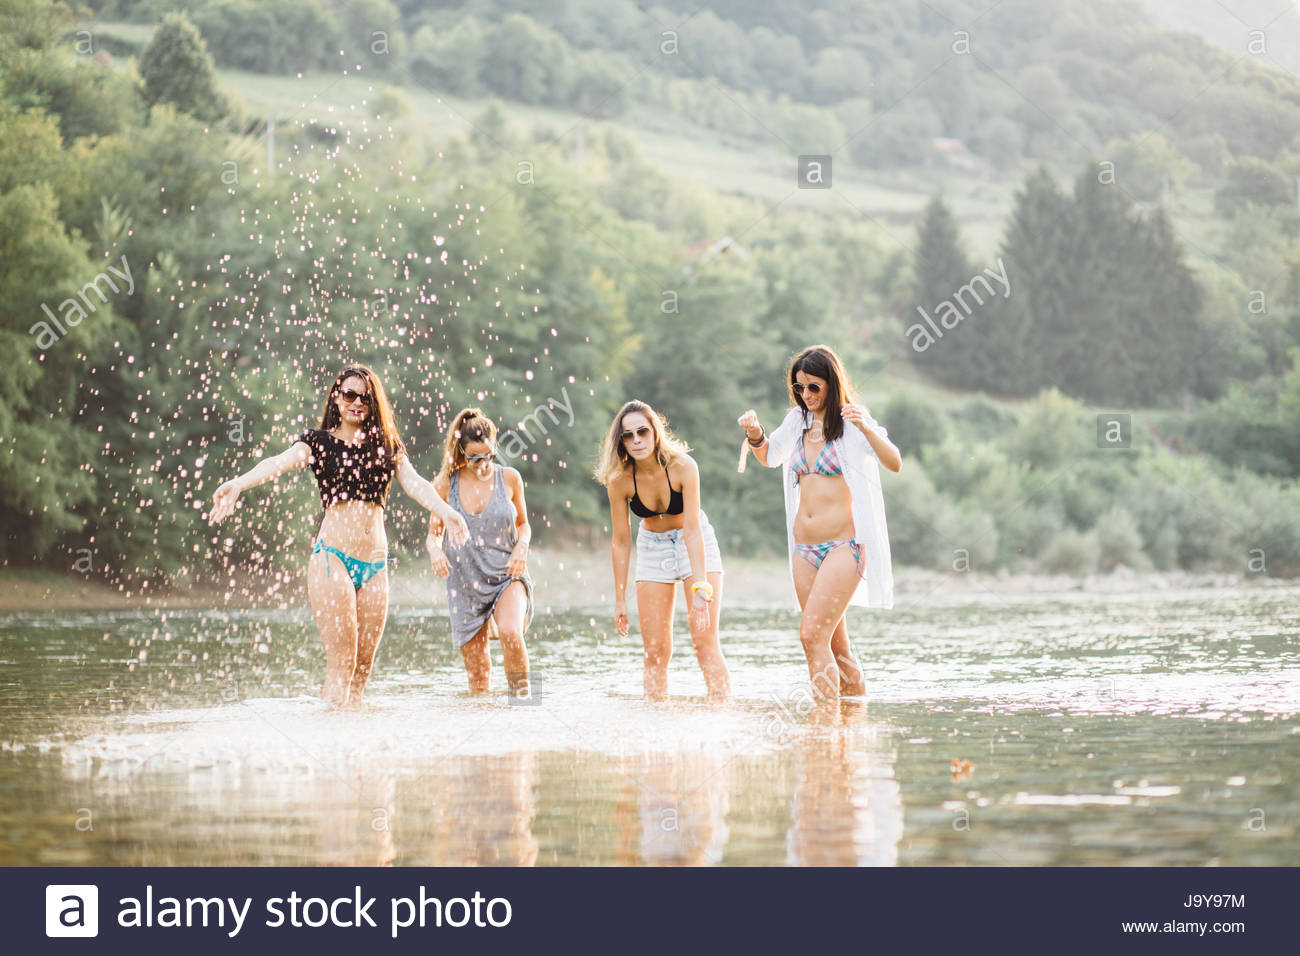 Young women on beach in summer sunset having good time - Stock Image